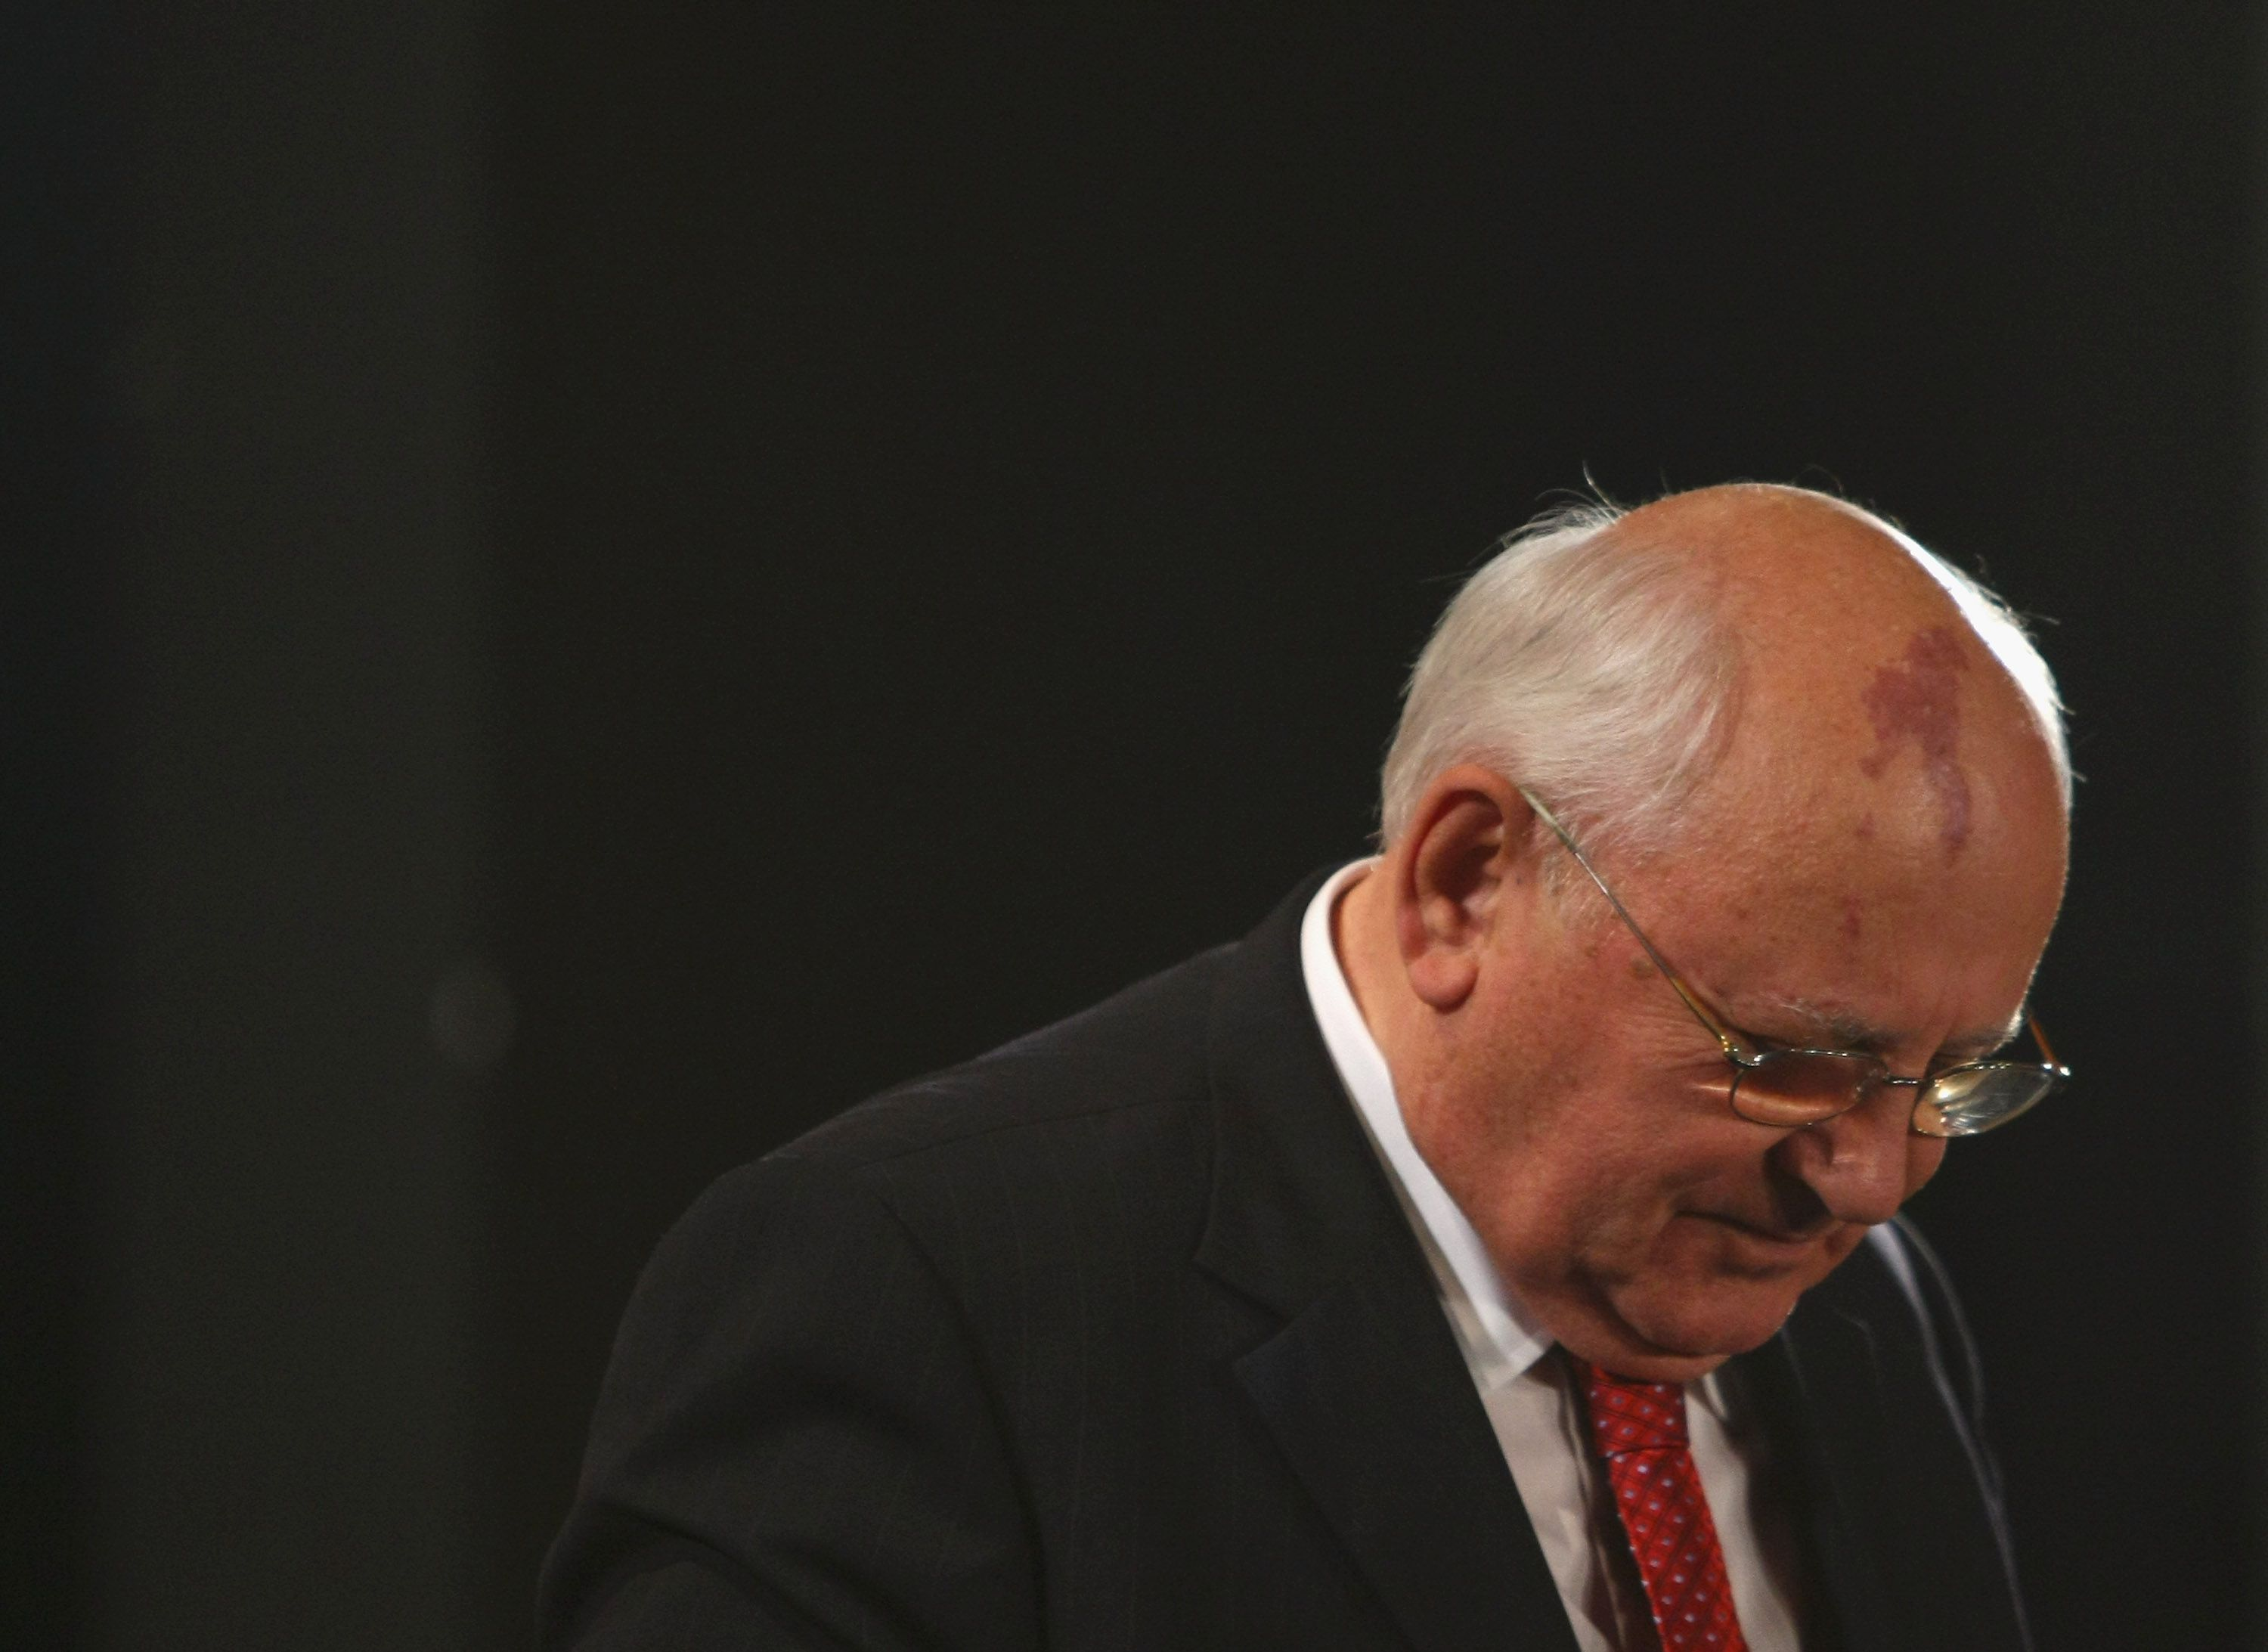 BERLIN - OCTOBER 03:  Former Soviet President Mikhail Gorbachev leaves the podium after receiving the Quadriga Award at the 2009 Quadriga Awards on October 3, 2009 in Berlin, Germany.  (Photo by Sean Gallup/Getty Images)